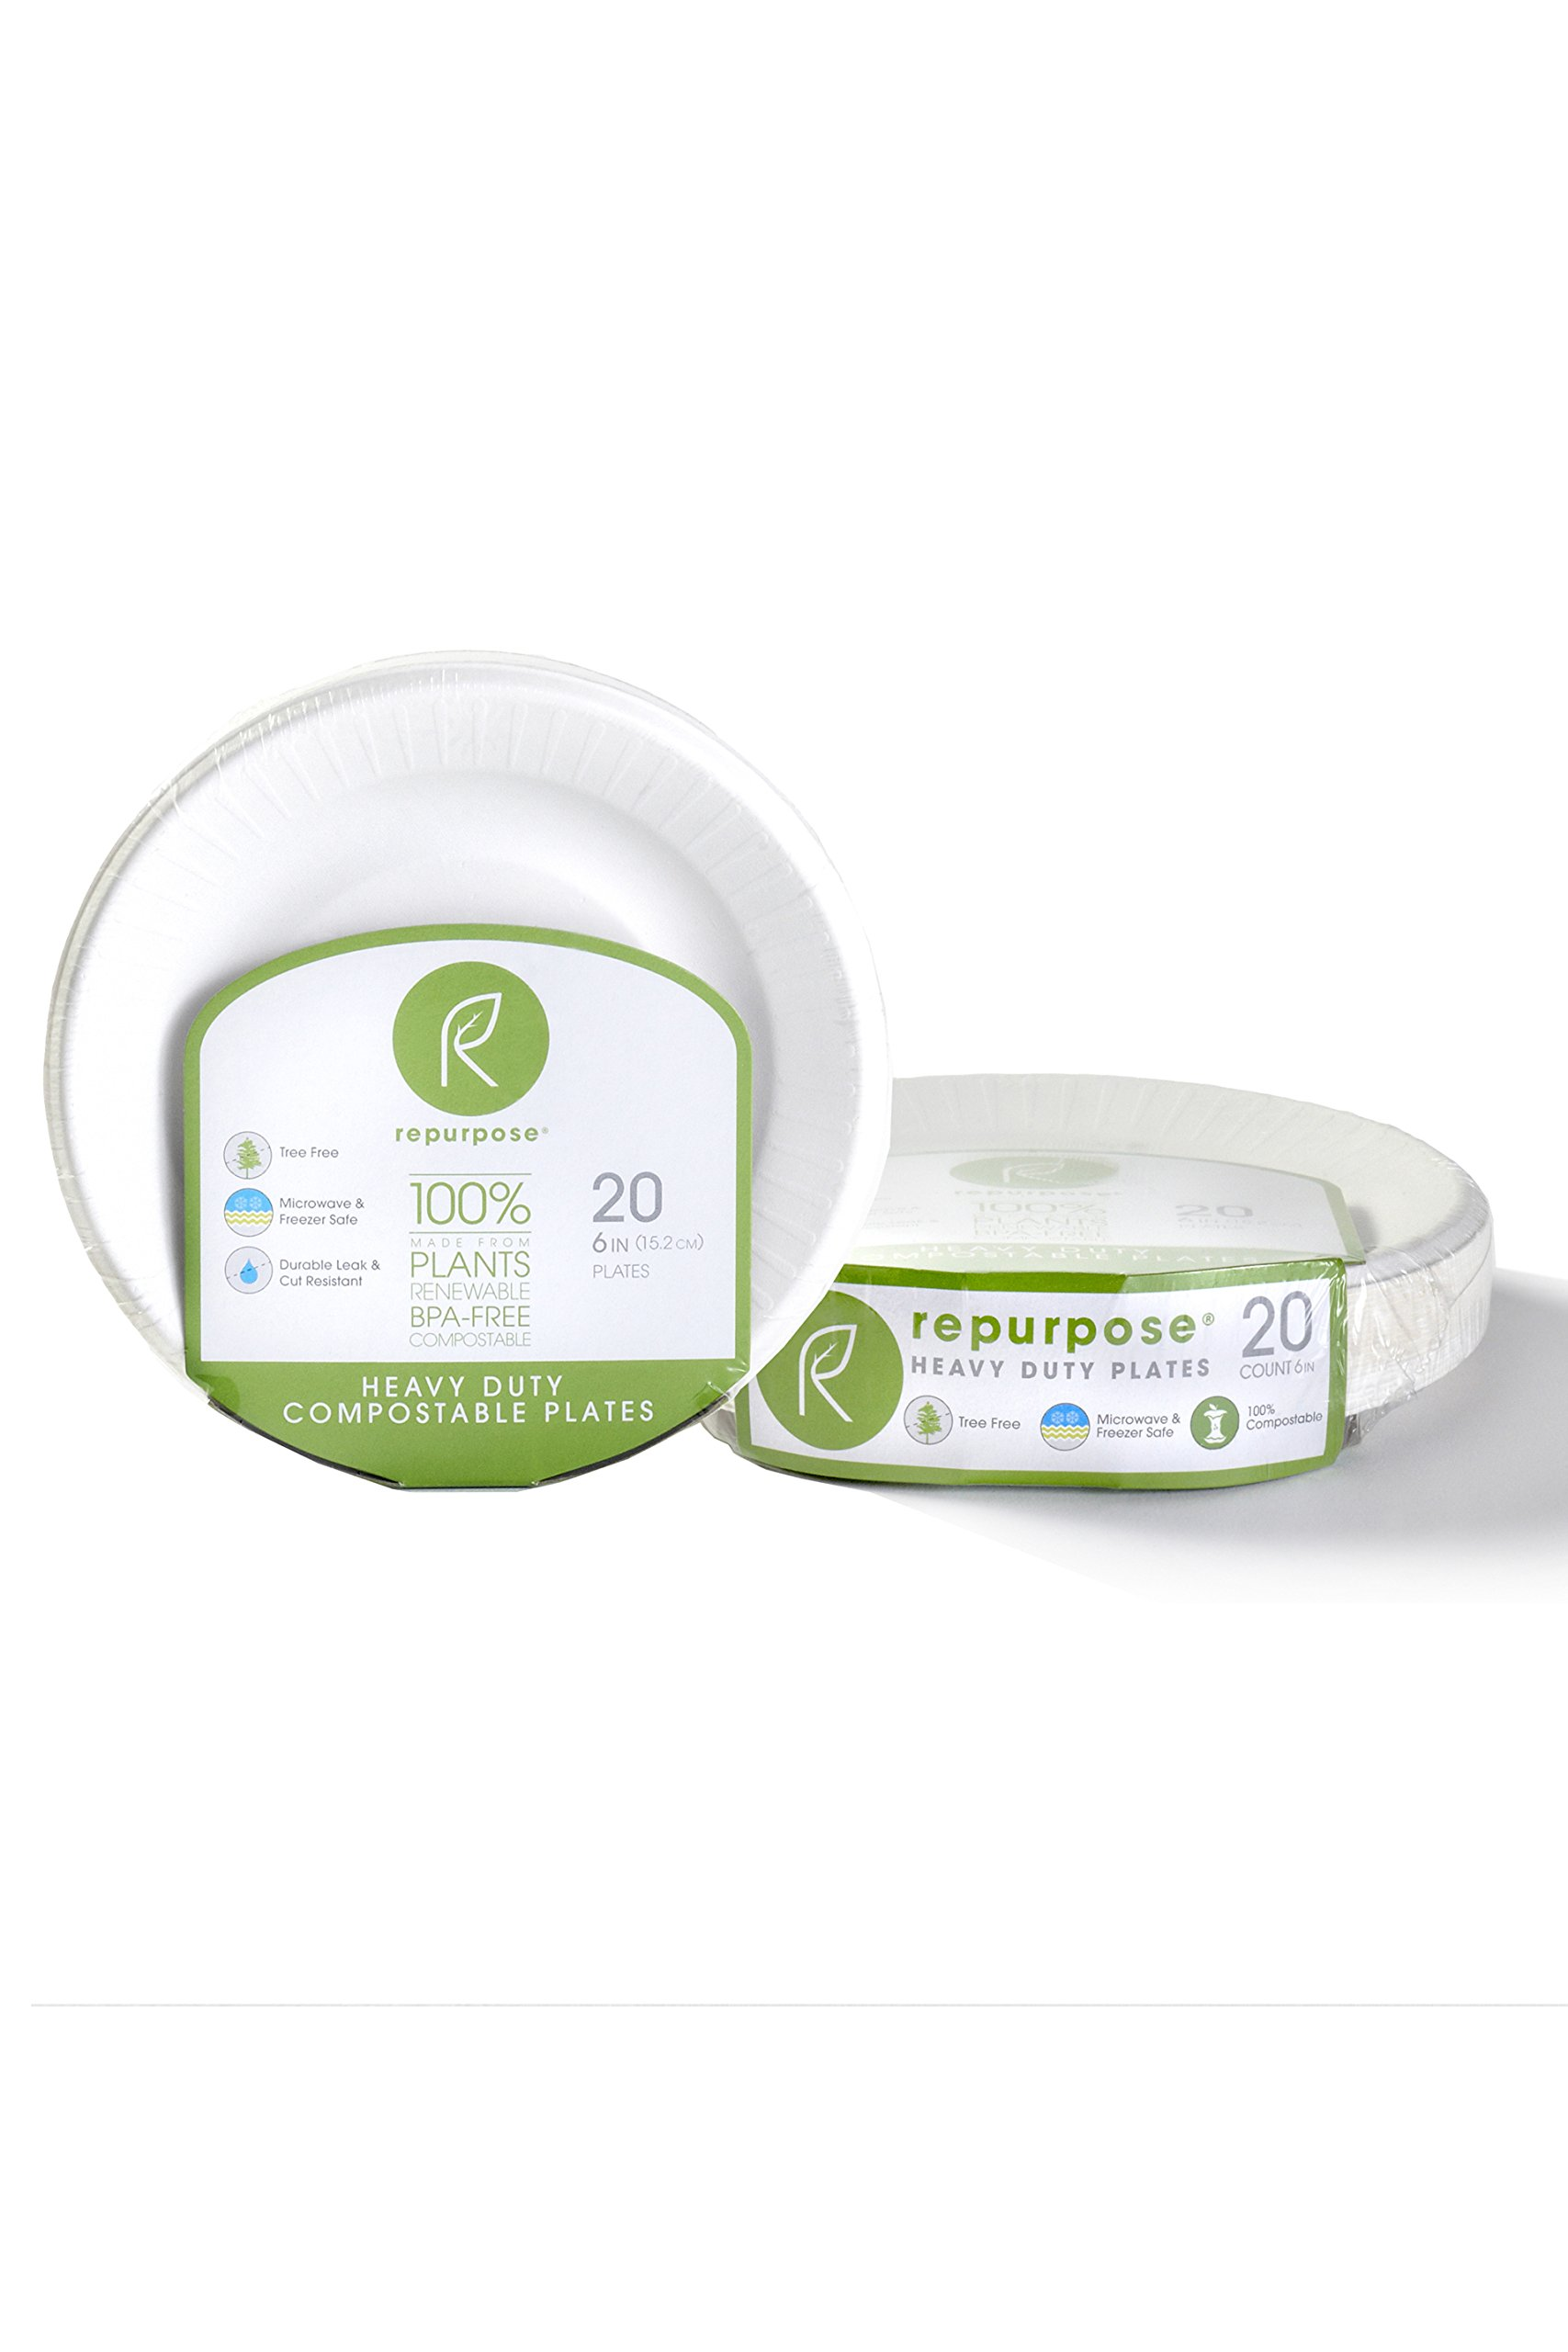 Repurpose 100% Compostable, Tree Free, Plant-Based Plates, Round, 6 inch (480 Count)